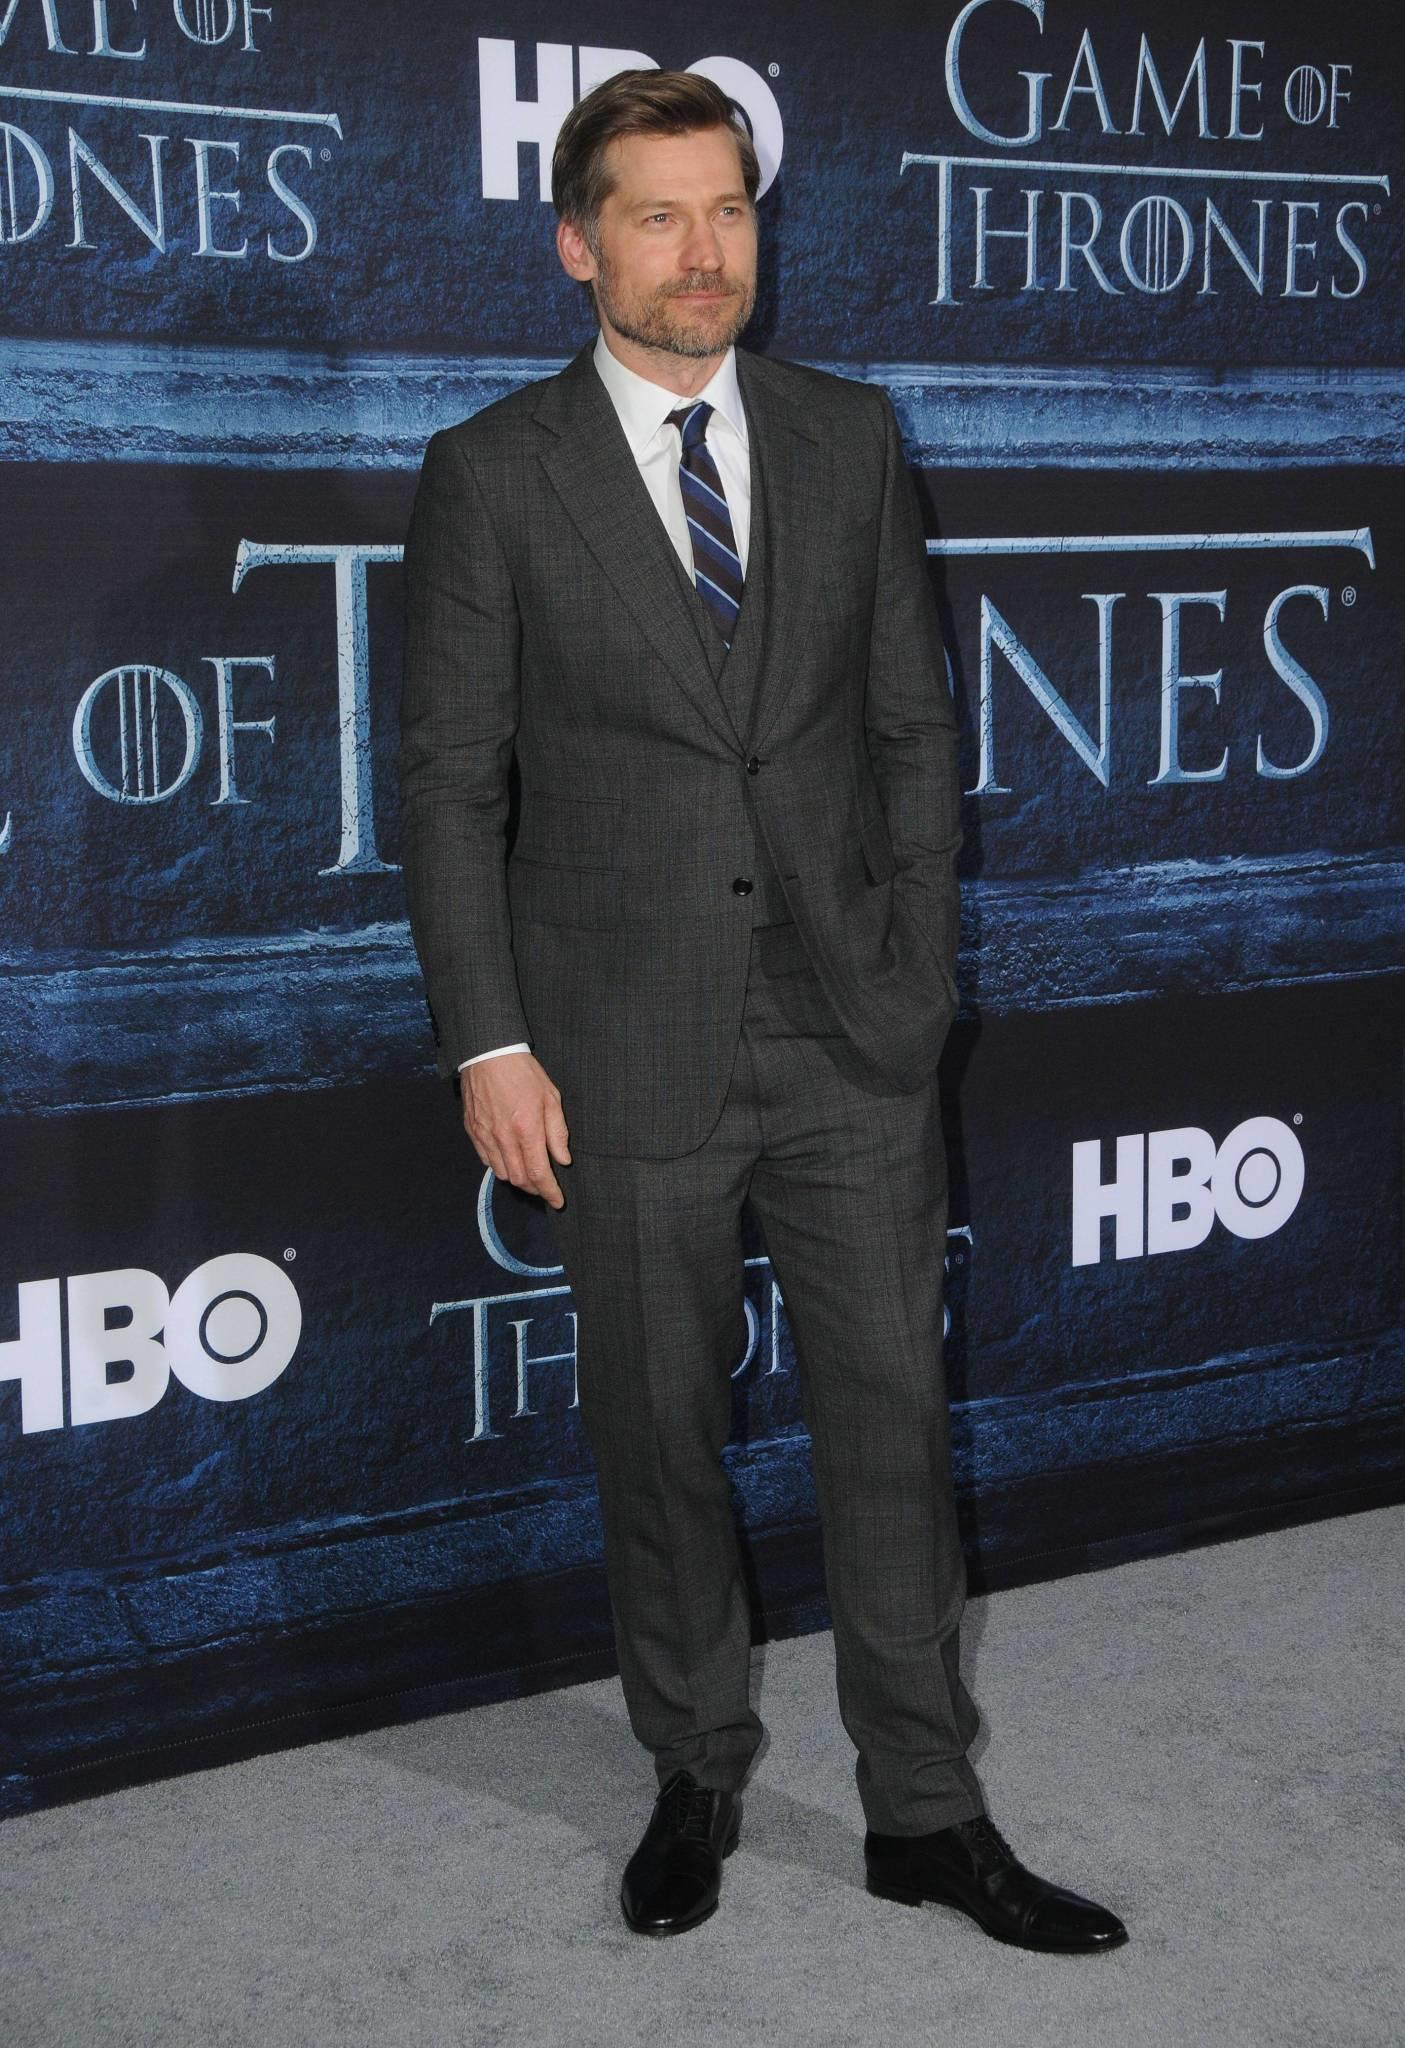 Game of Thrones Premiere 2016